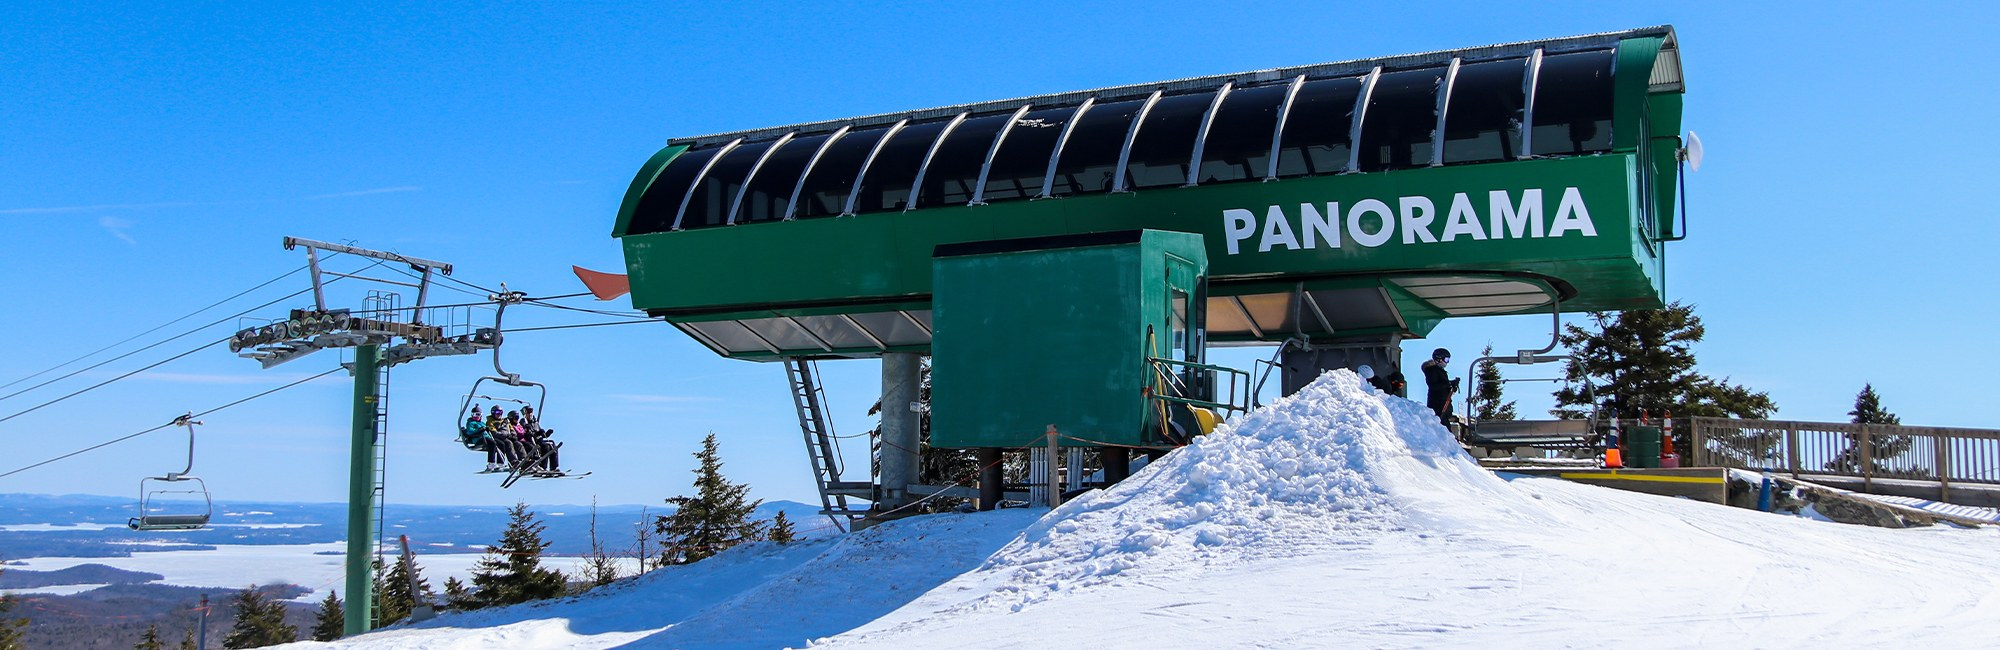 Pan lift at the summit